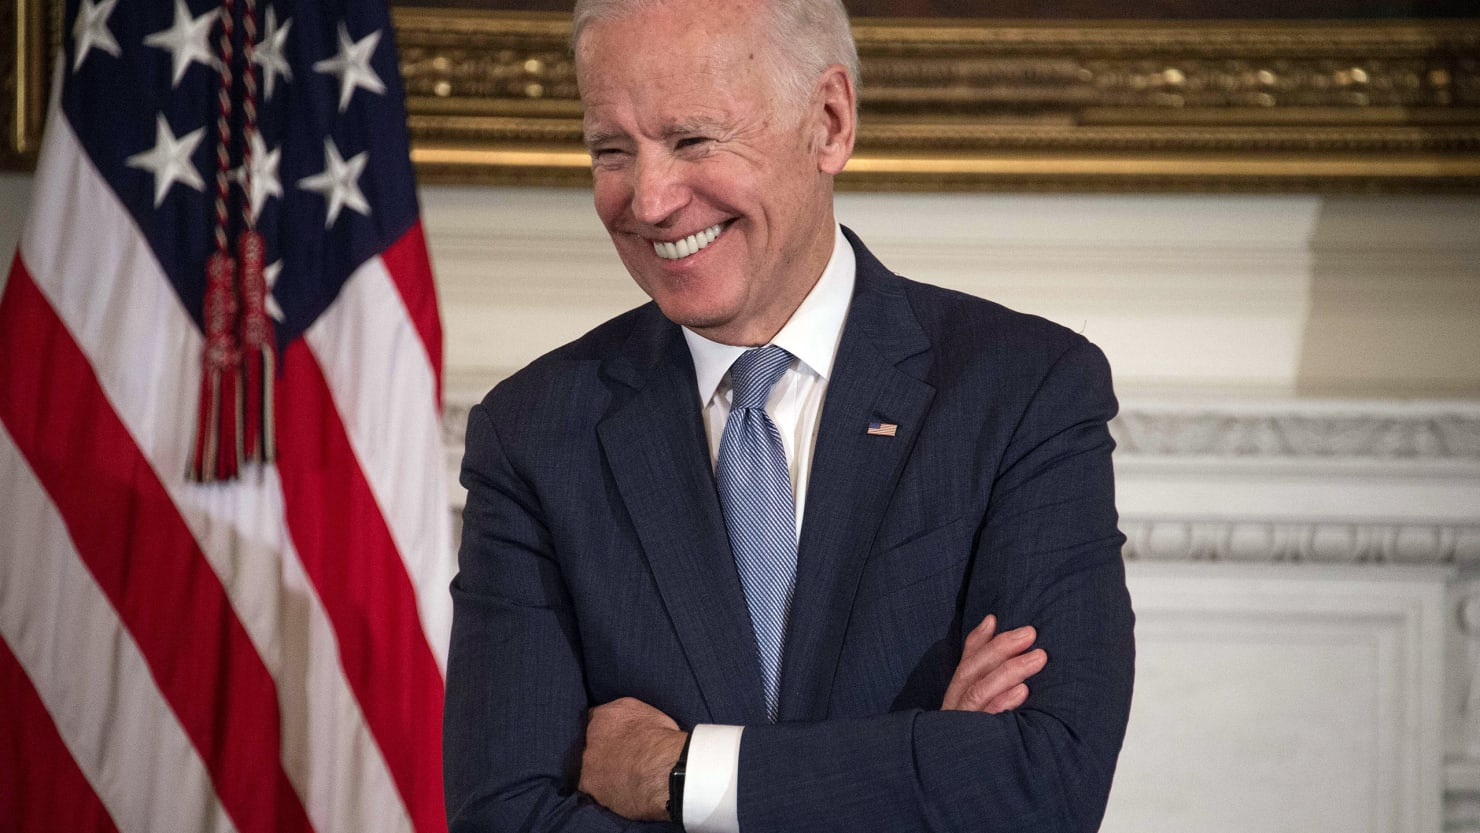 dear lord would joe biden be a terrible candidate for these times